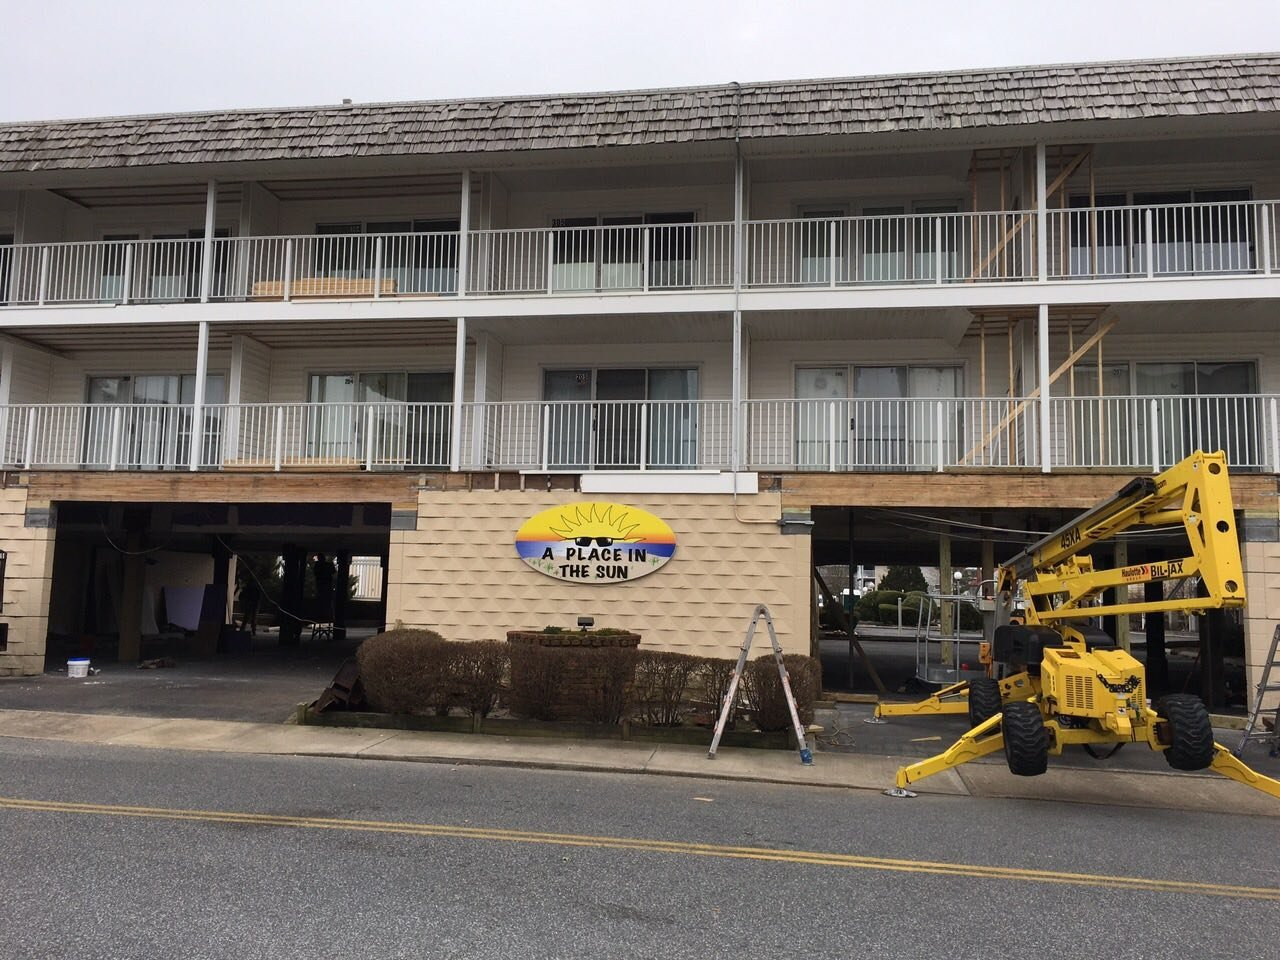 7-A-place-in-the-sun-Ocean-City-structural-repairs.jpg